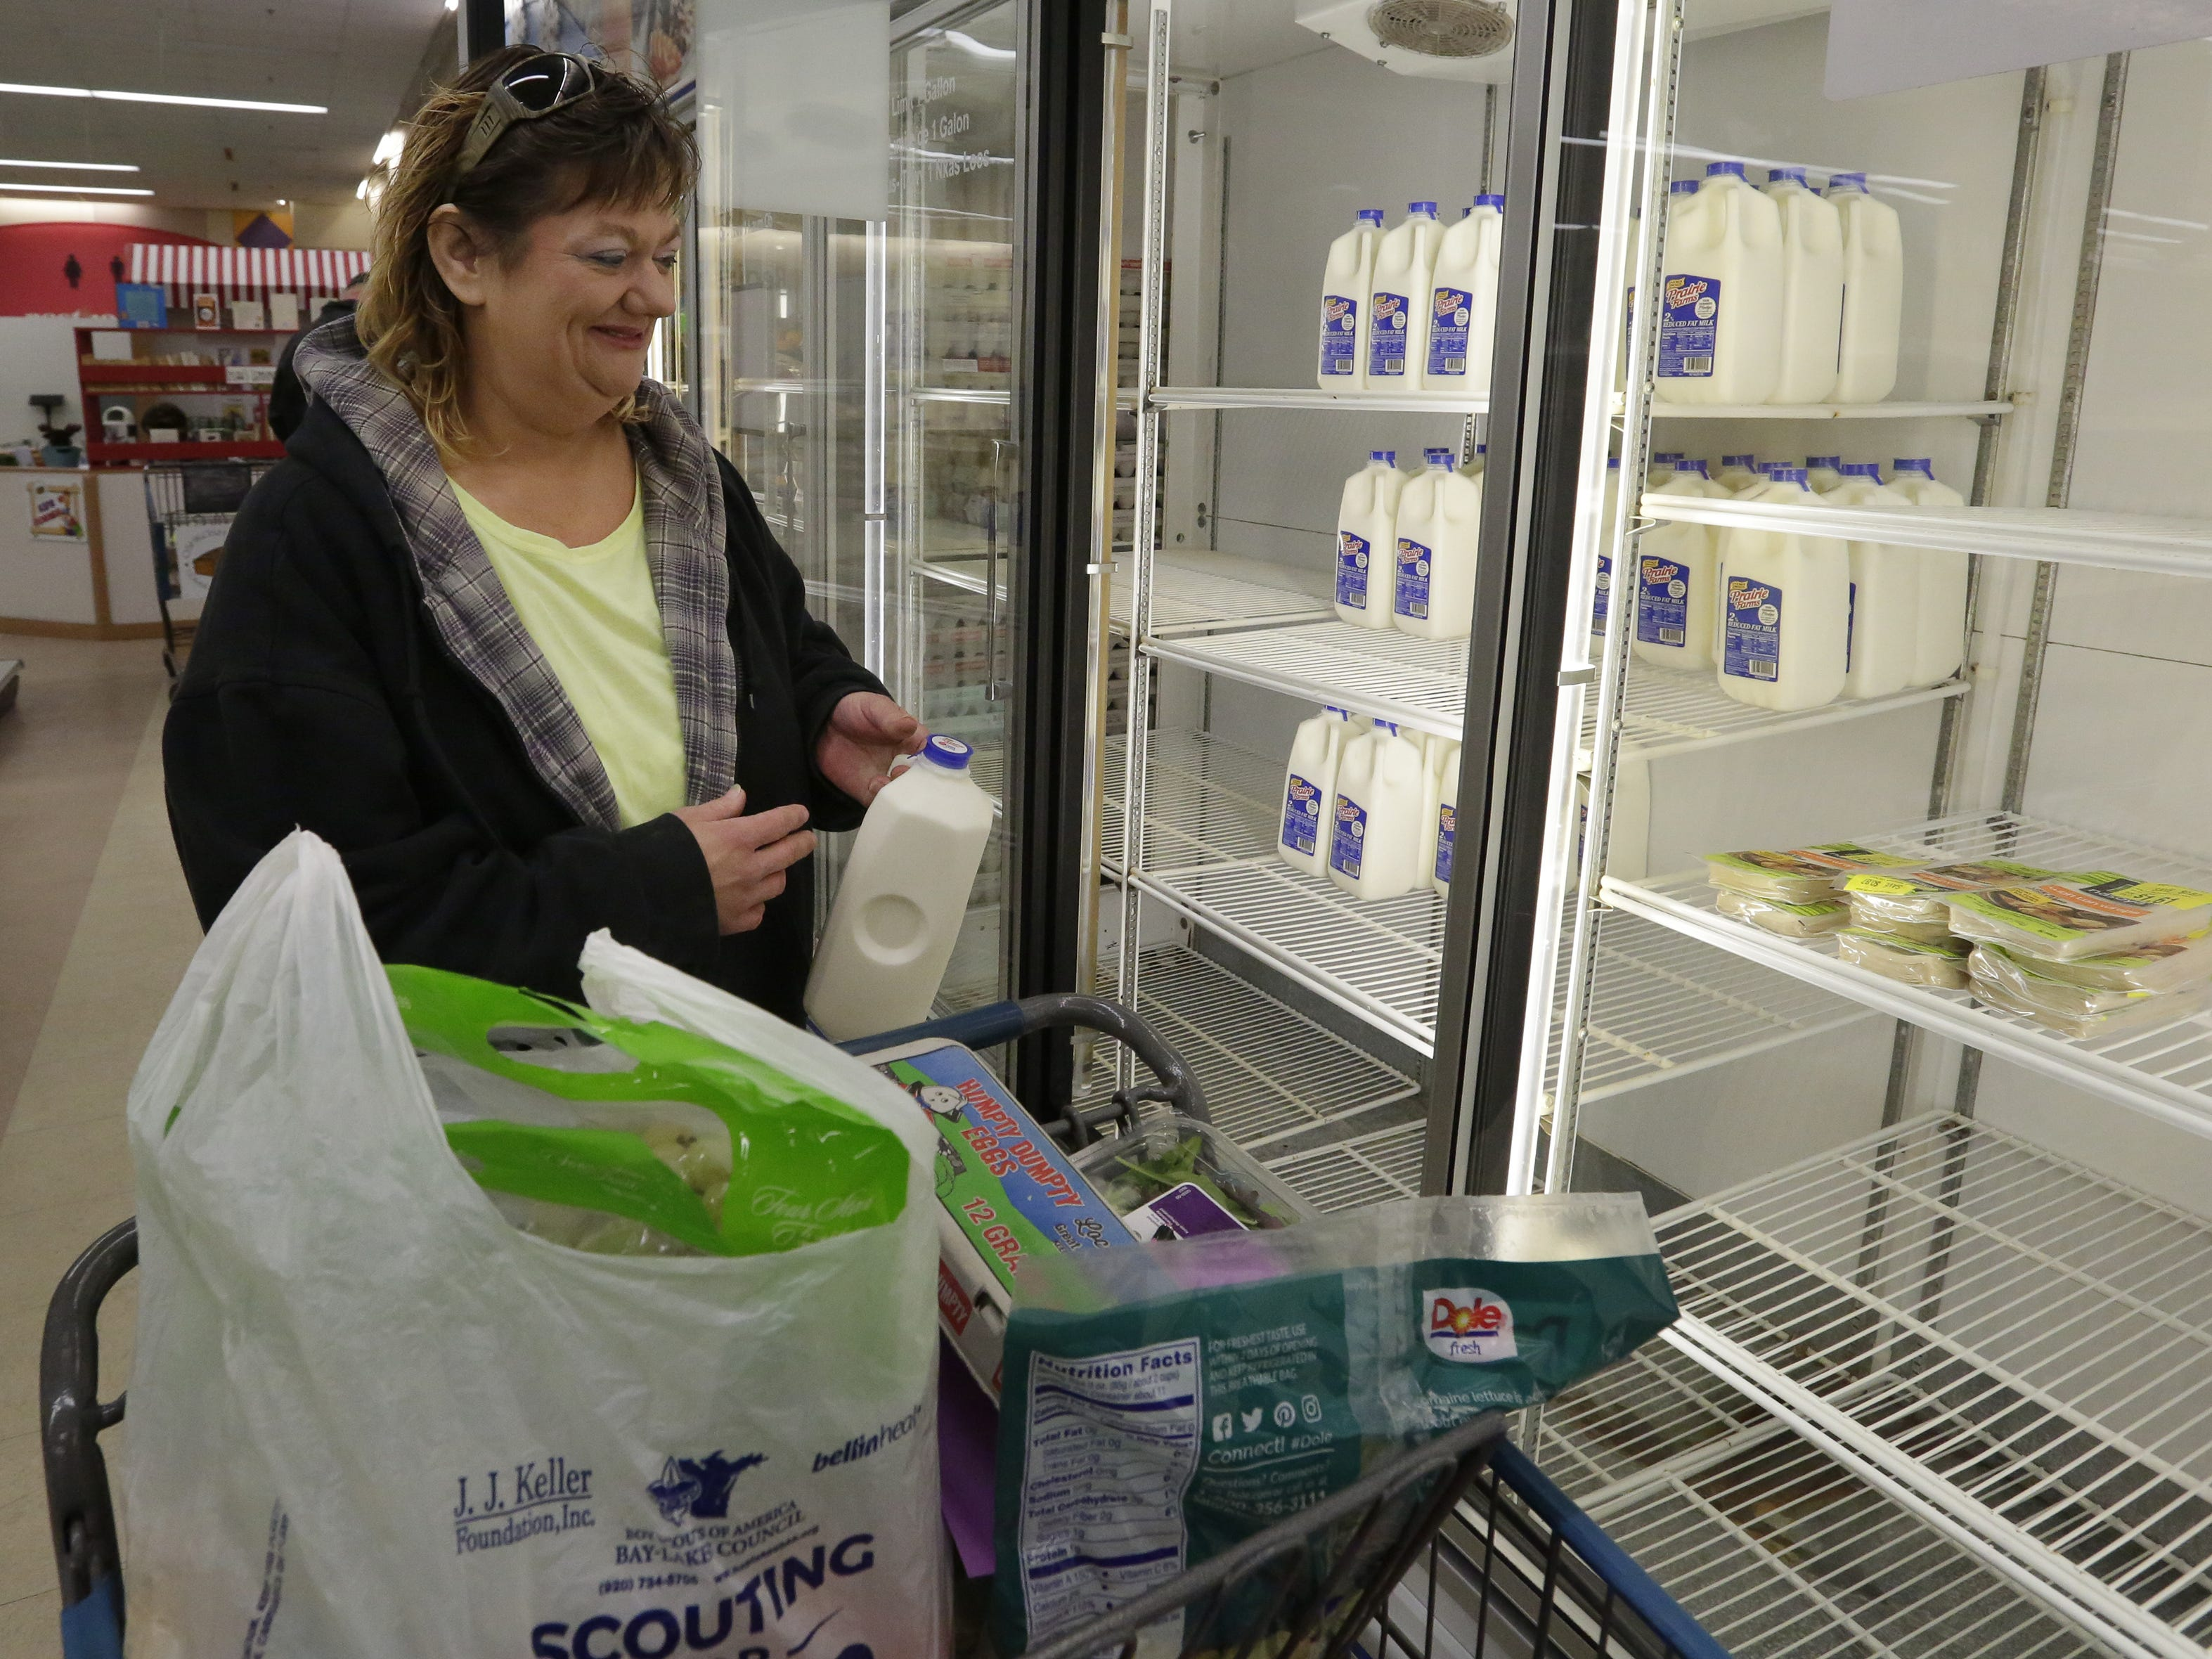 Donnette Collar takes milk from the cooler to put into her cart Thursday, Nov. 1, 2018, at the Oshkosh Area Community Pantry.